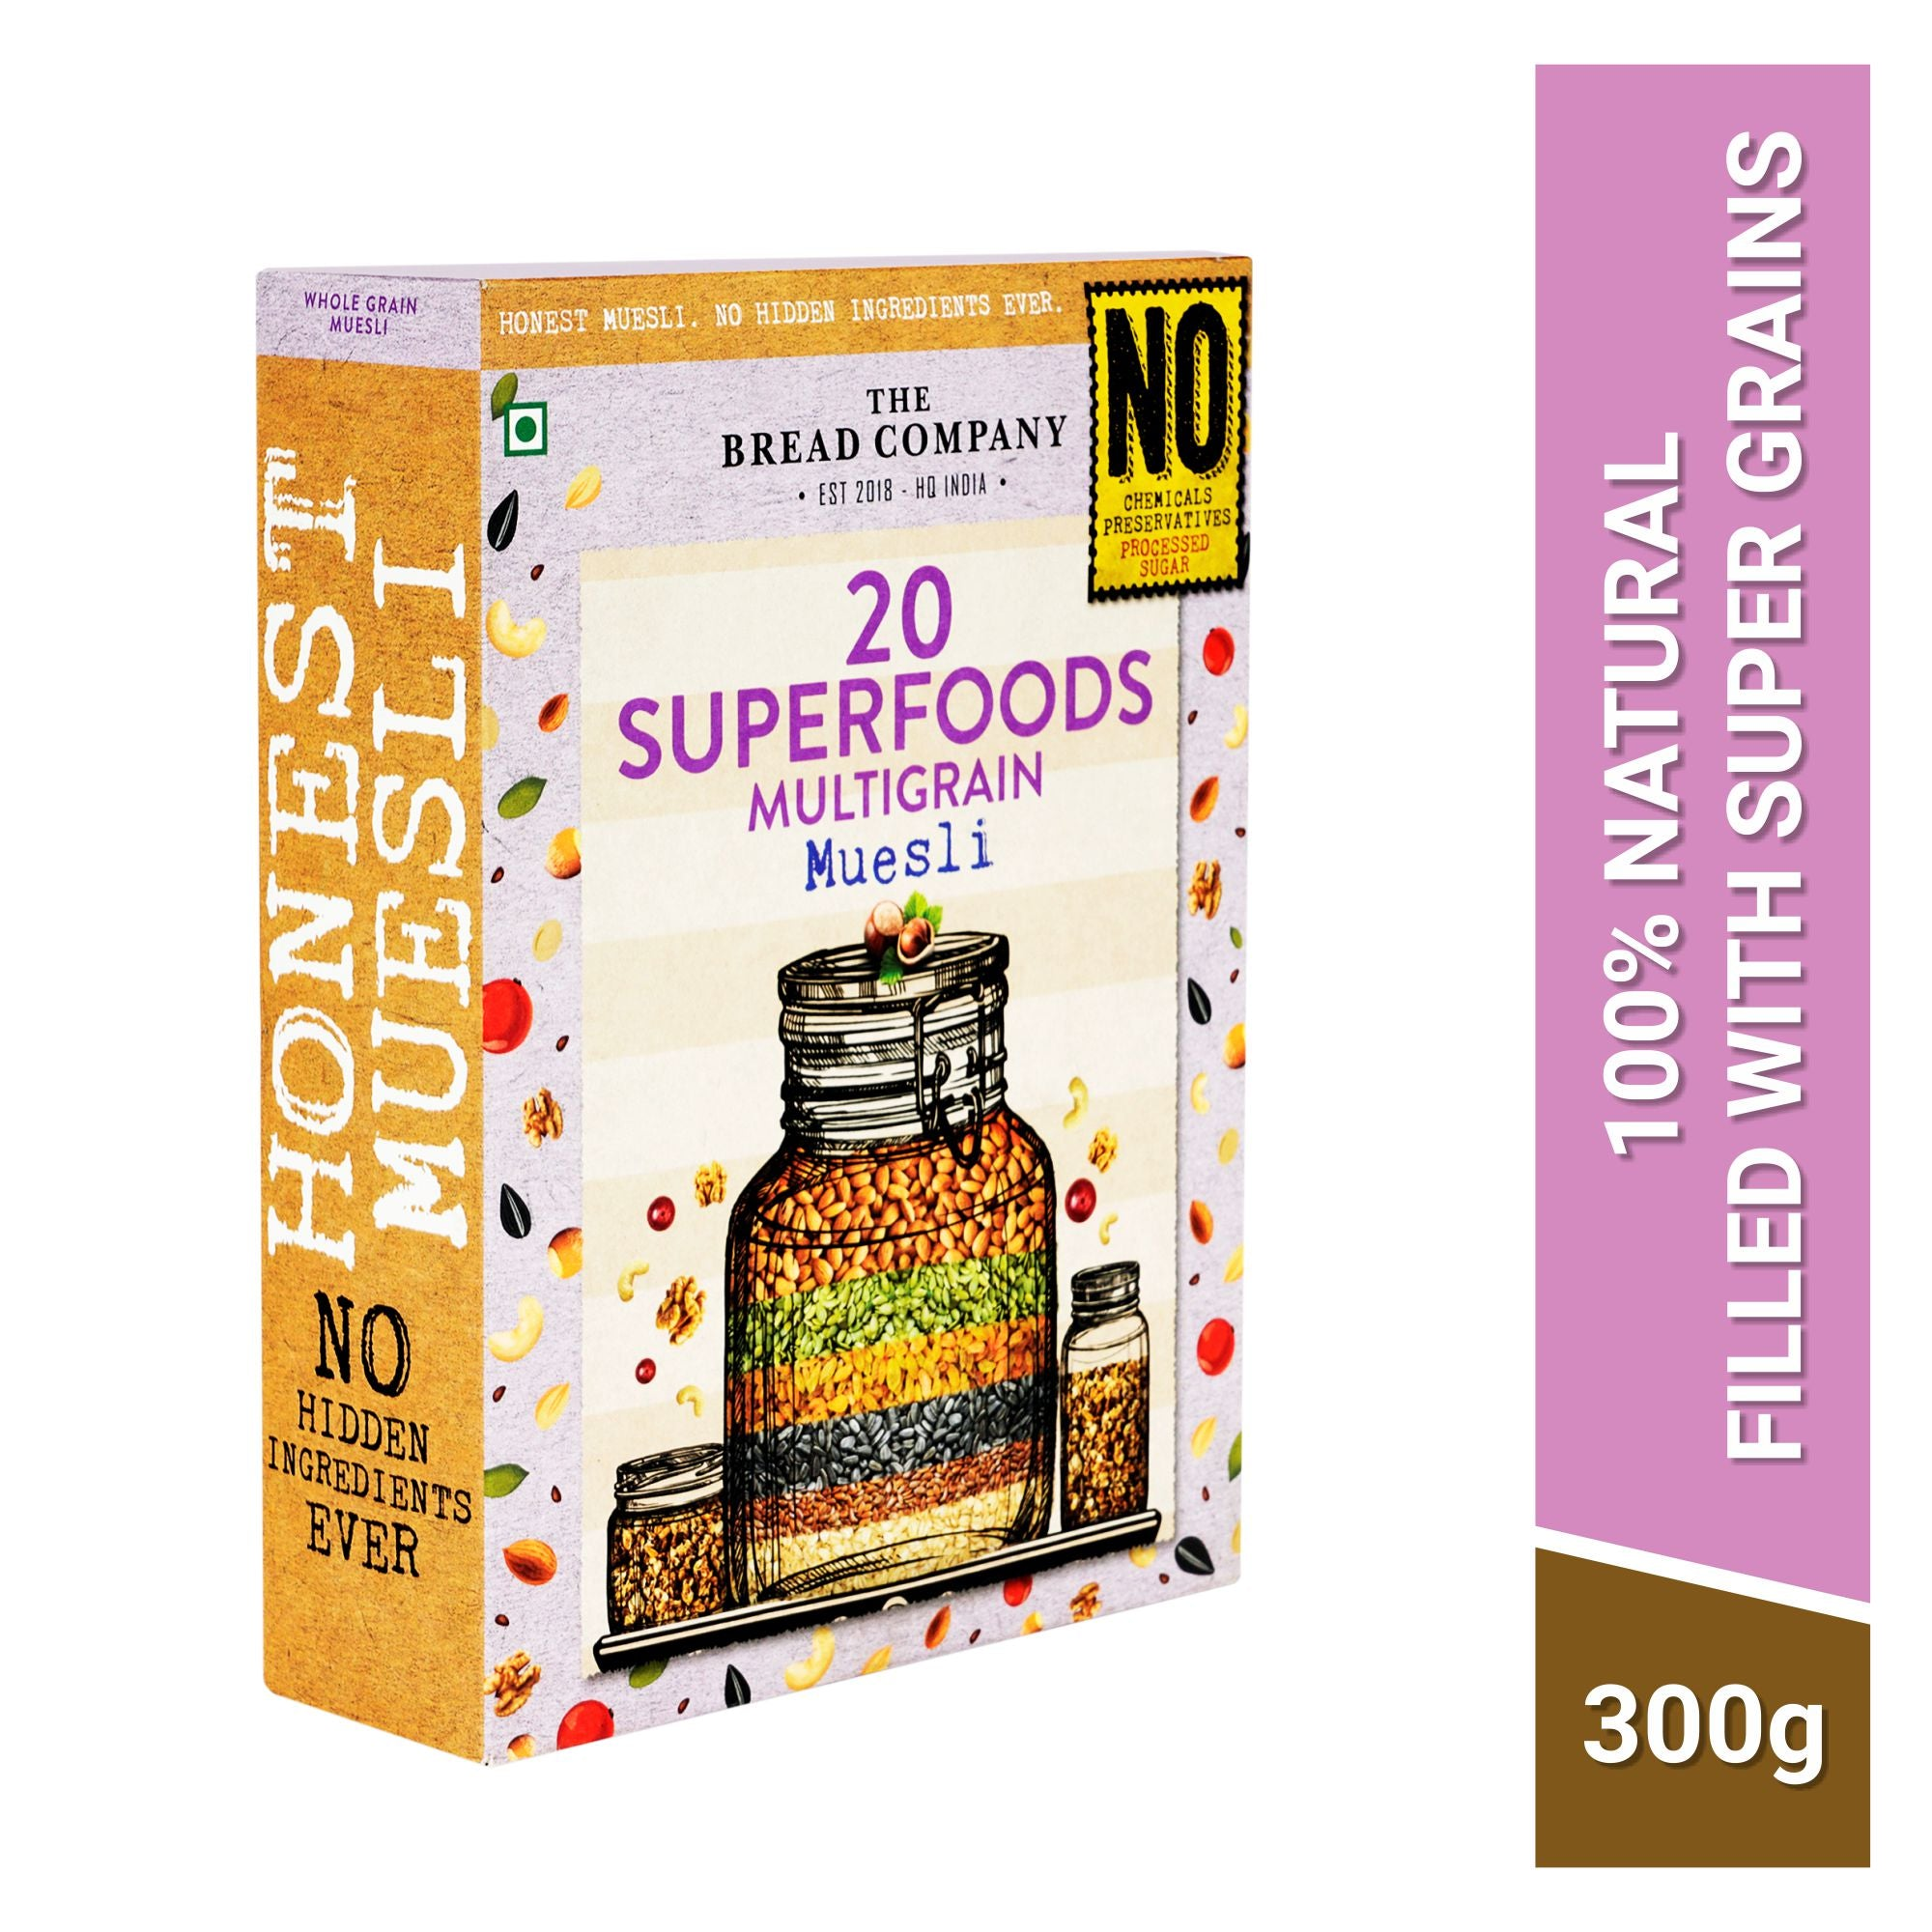 20 Superfoods Multigrain Muesli  - 300 gms